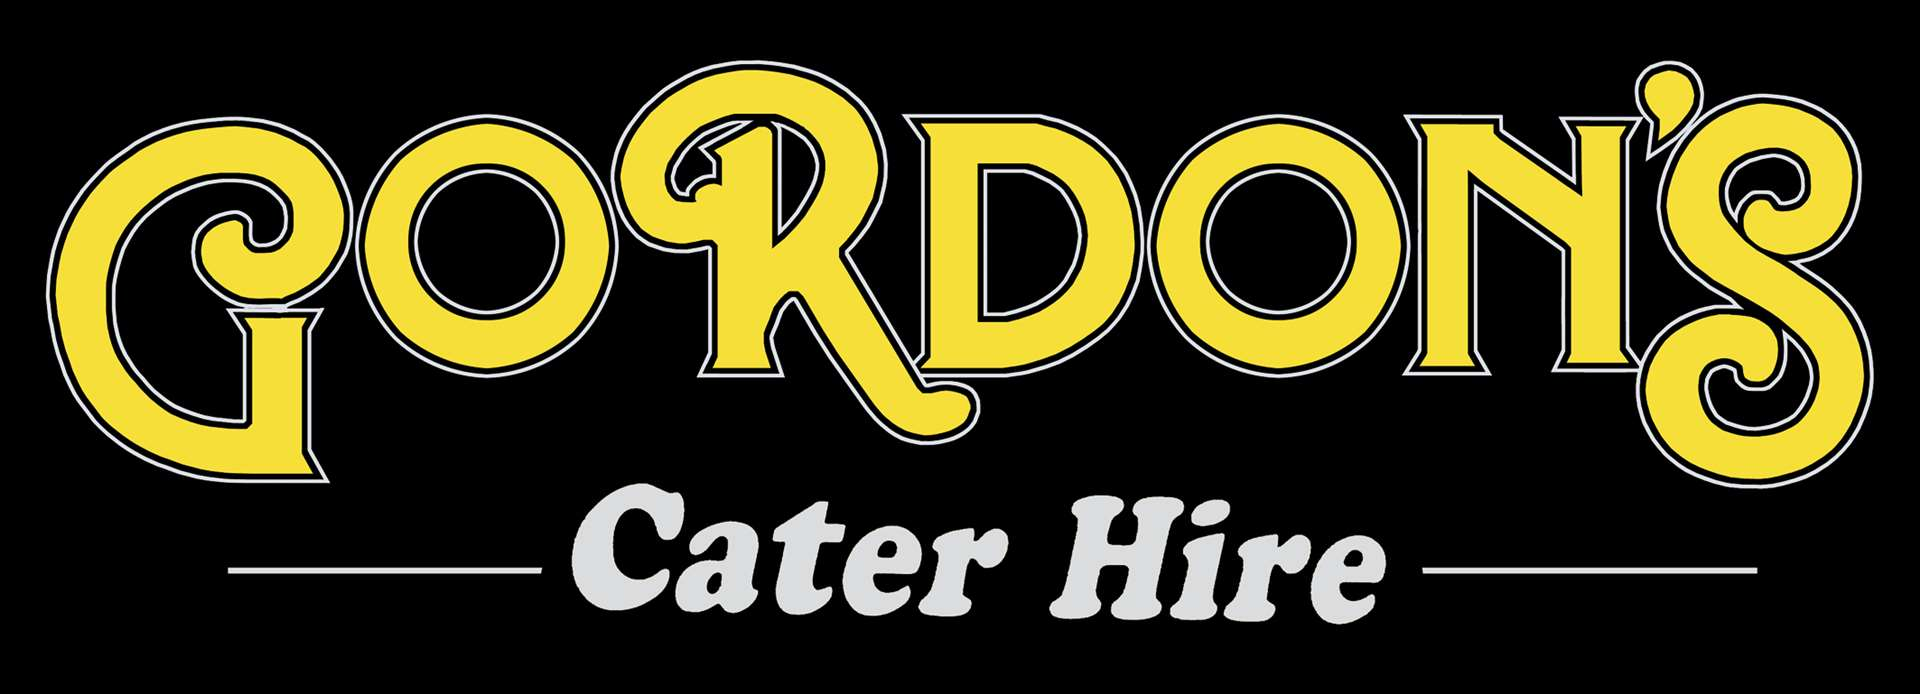 Gordon's Cater Hire